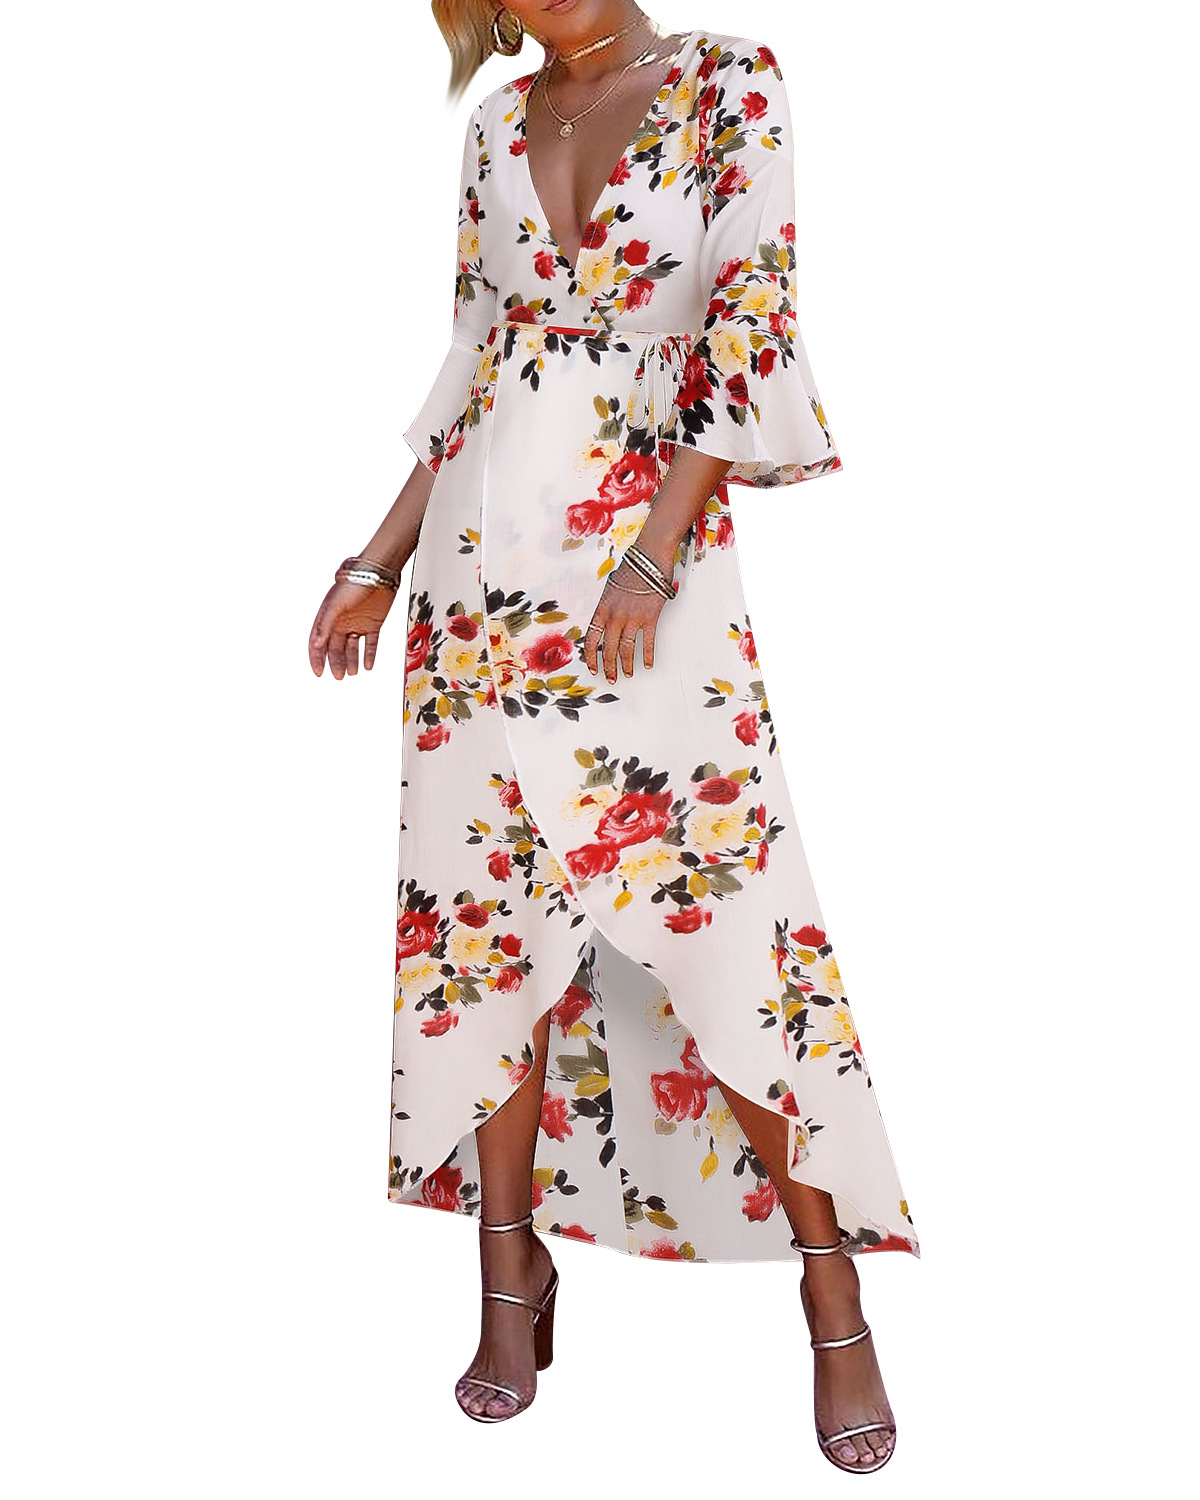 87a539baa Women Floral Printed Maxi Dress V Neck 3/4 Flare Sleeve Boho Summer Beach Long  Dress off white+red floral